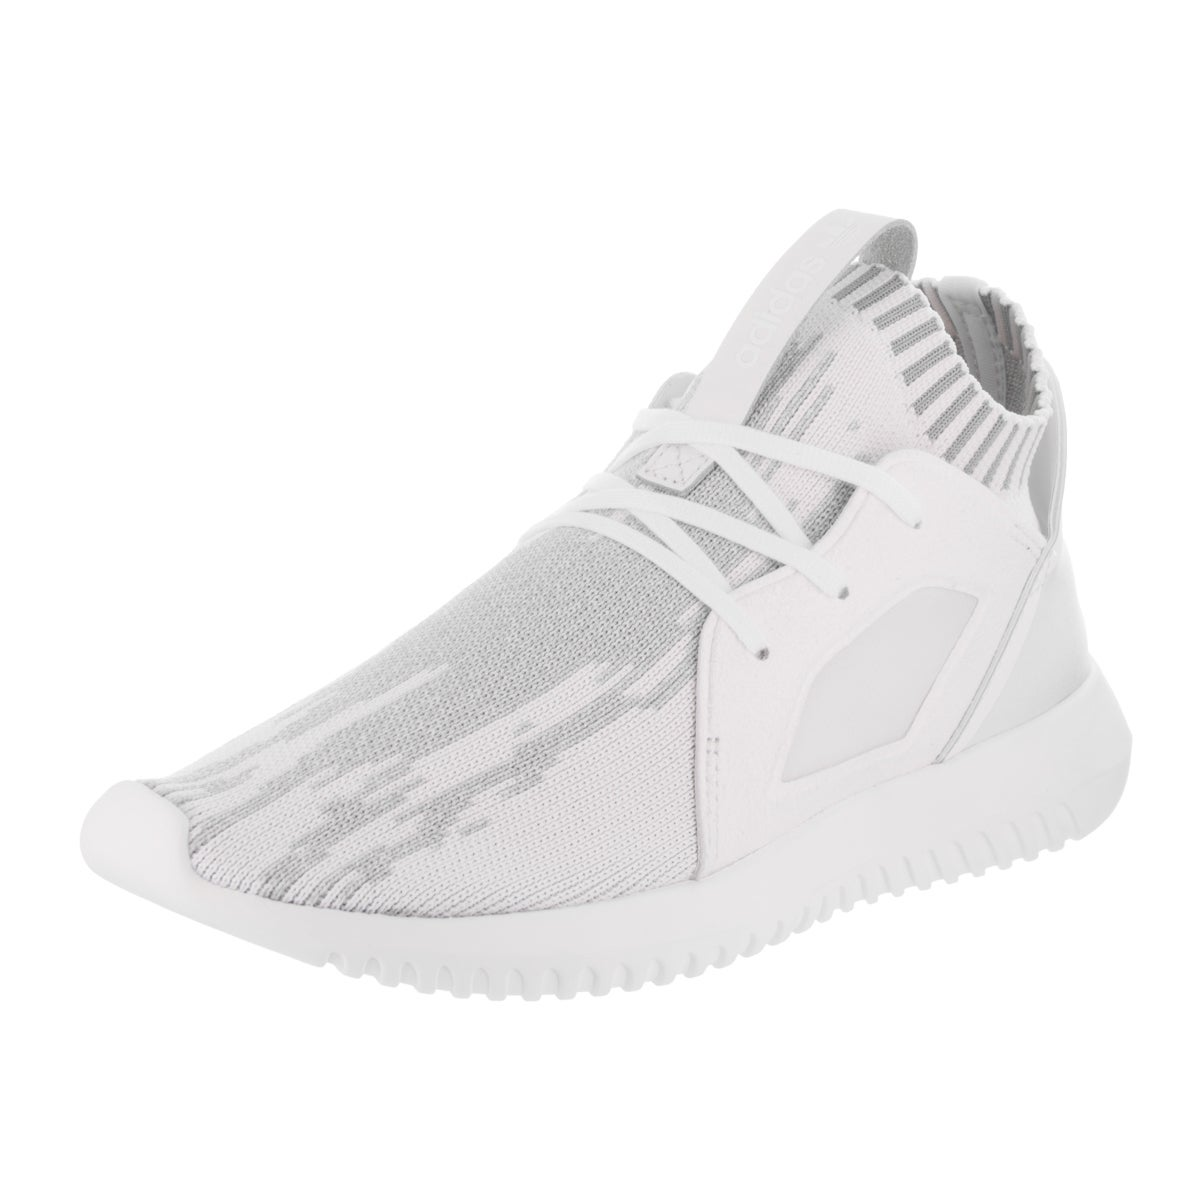 cheaper 5fc31 0ccdd Adidas Womens Tubular Defiant PK W Originals Running Shoe